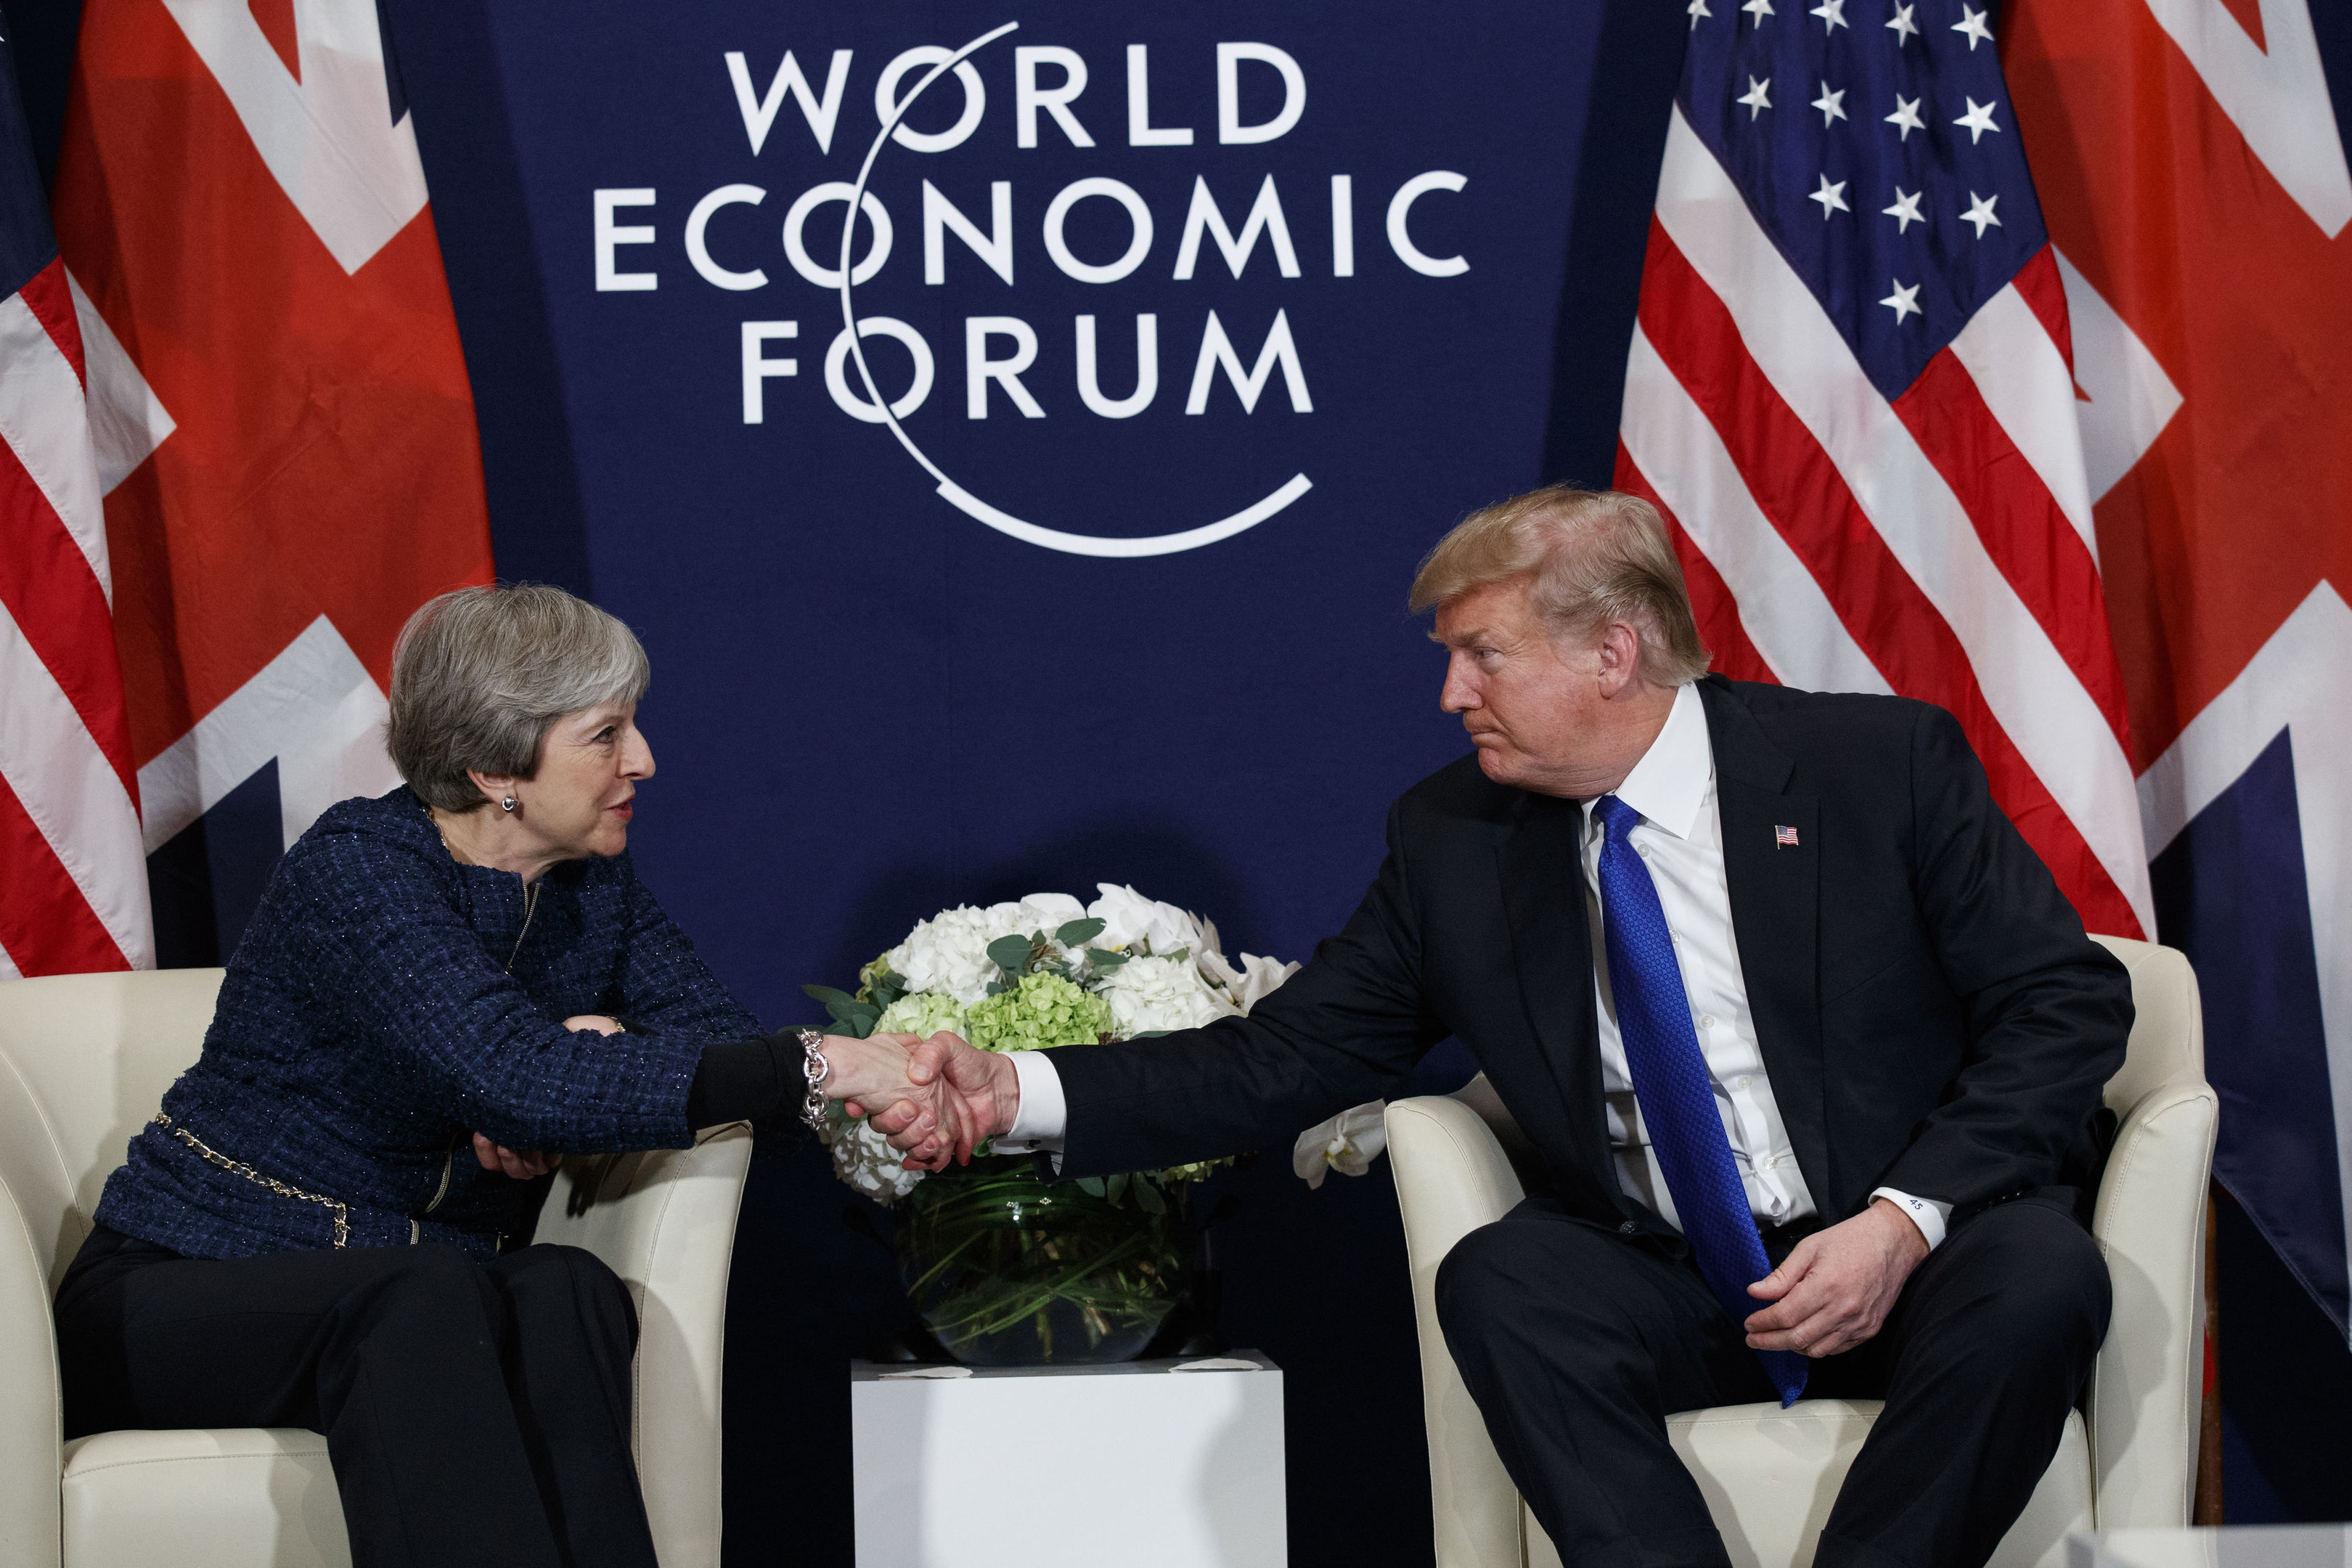 President Donald Trump meets with British Prime Minister Theresa May at the World Economic Forum in Davos (AP Photo/Evan Vucci)